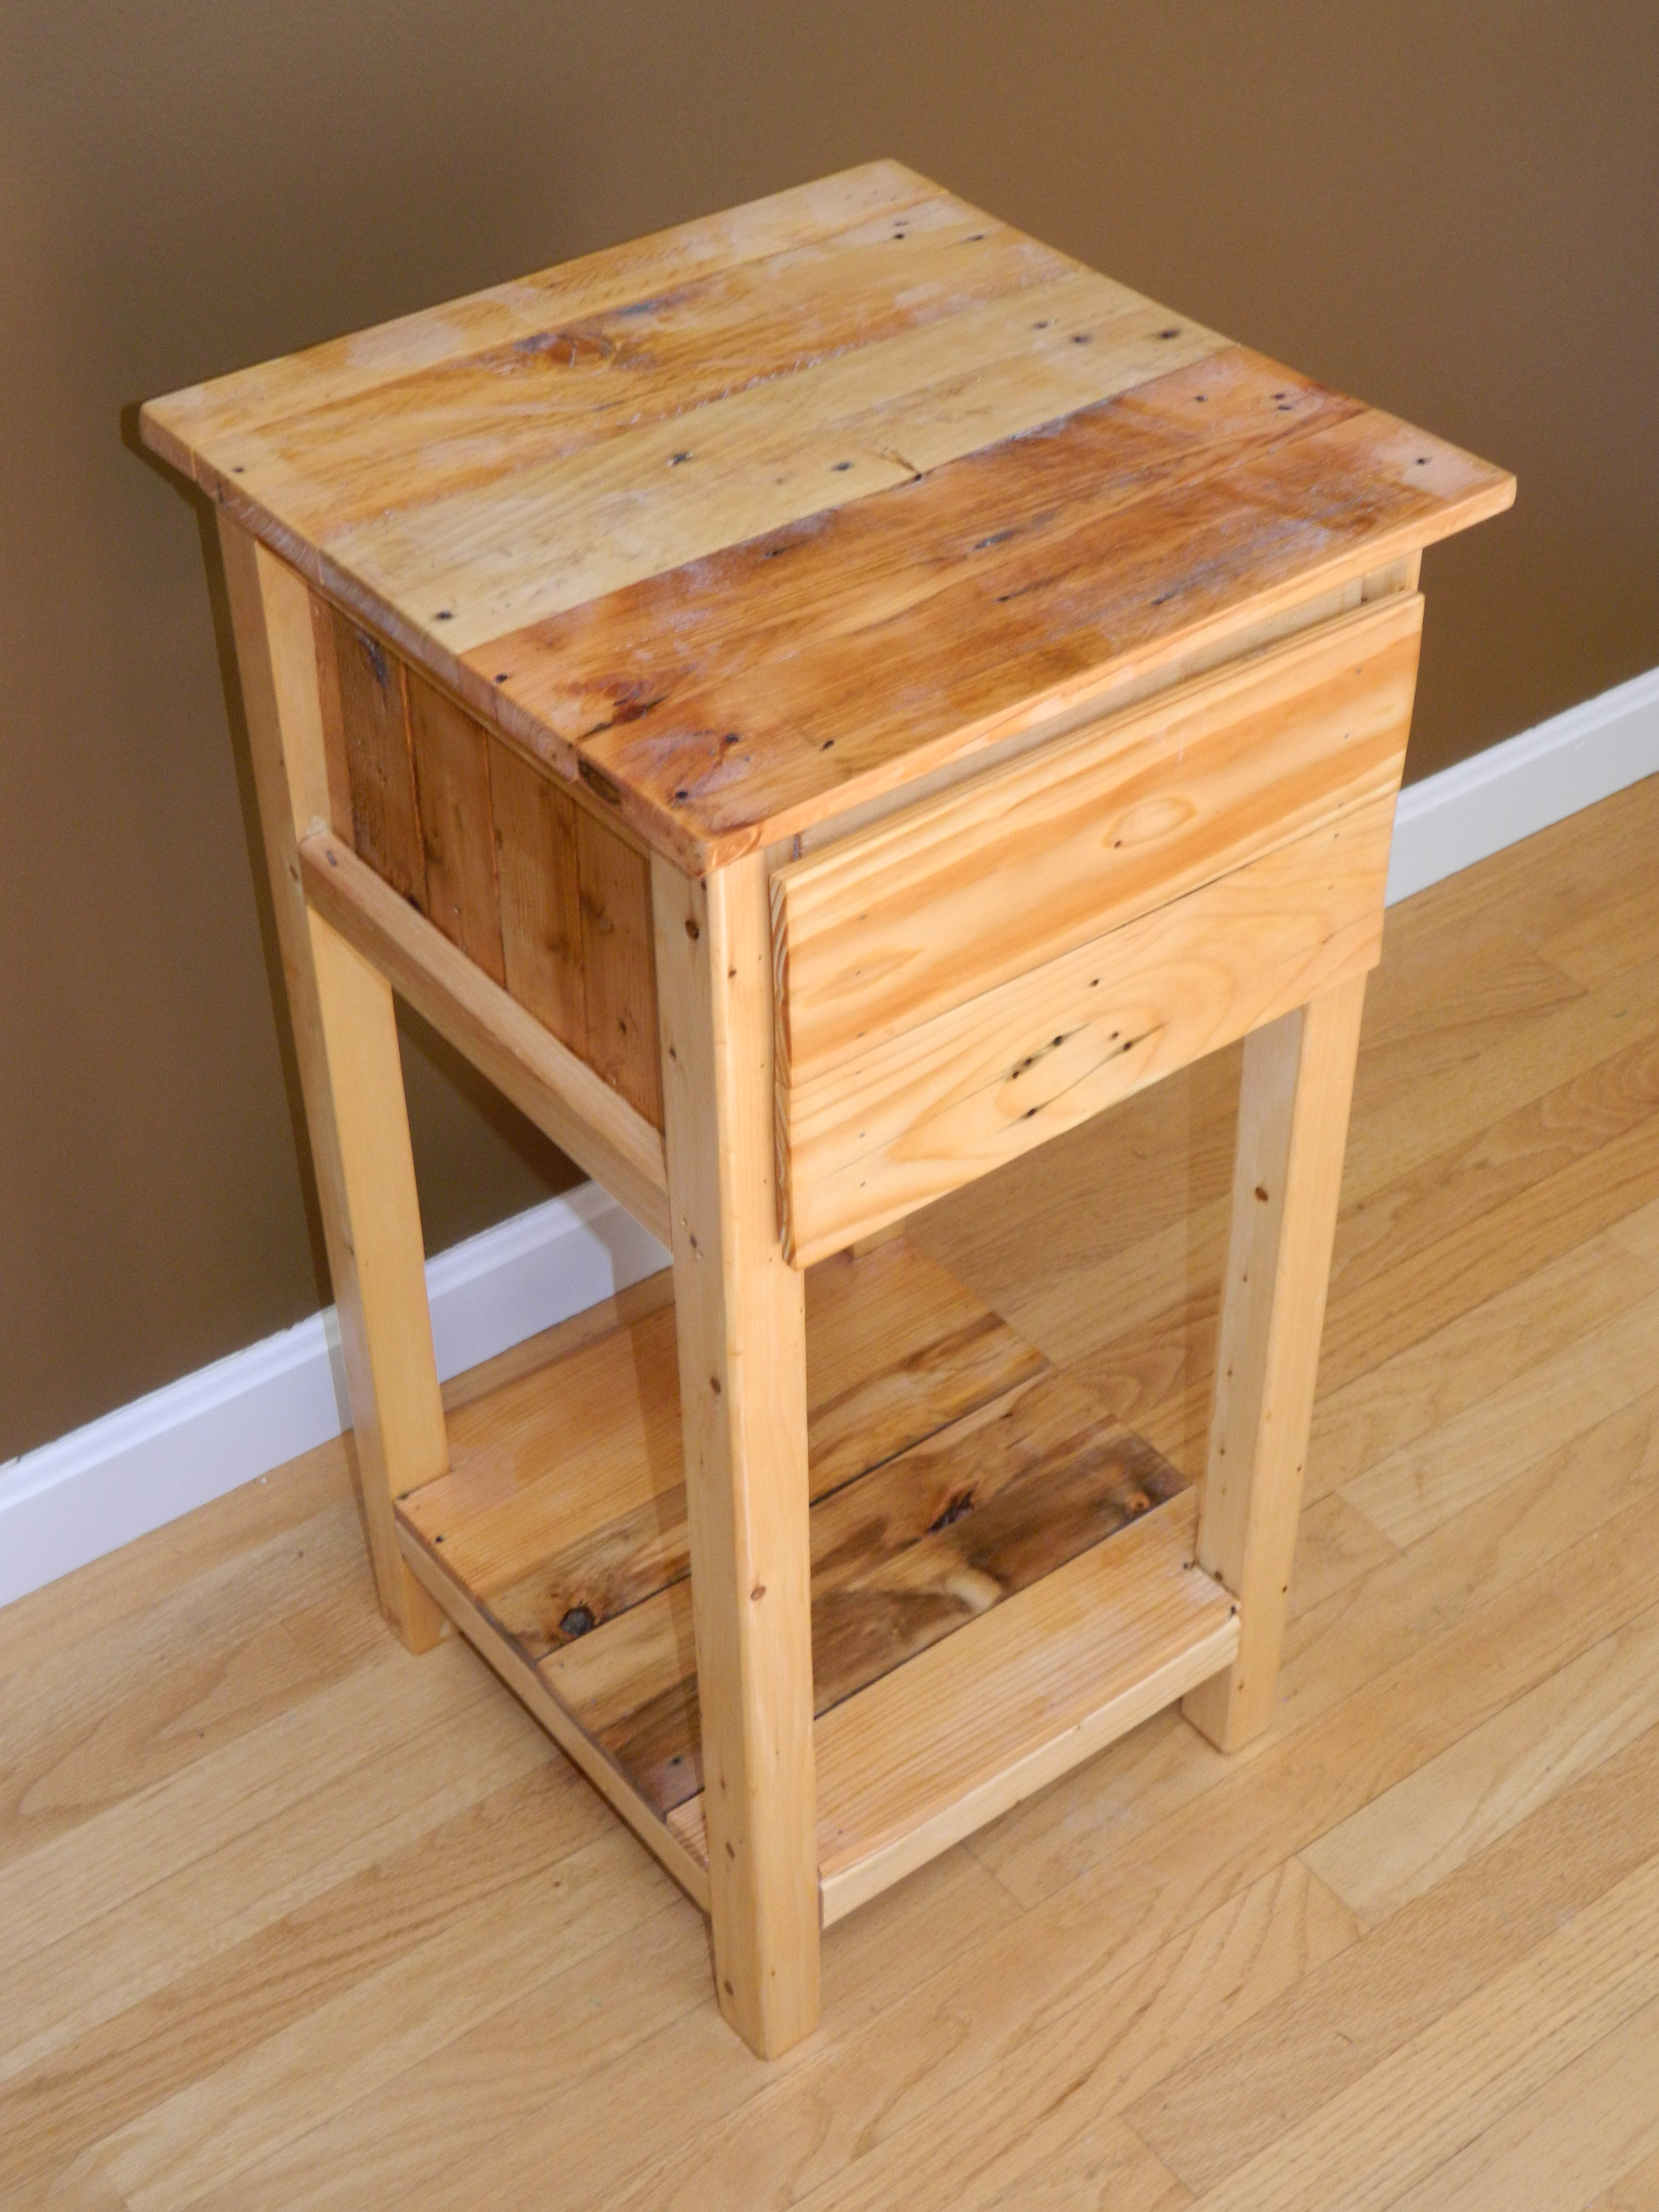 Ana White | Pallet Nightstand - DIY Projects